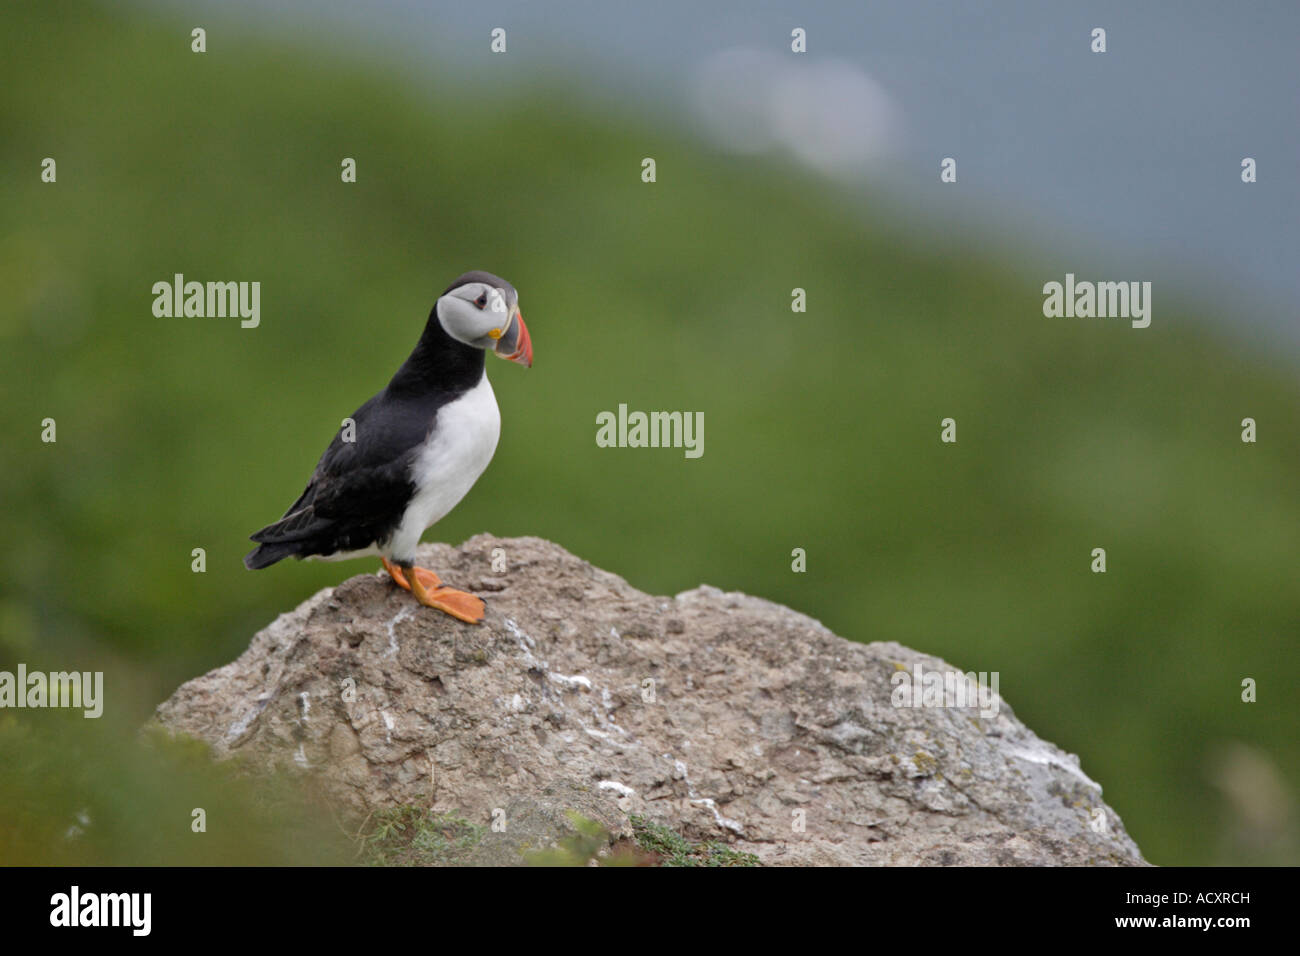 Puffin stood on rock - Stock Image